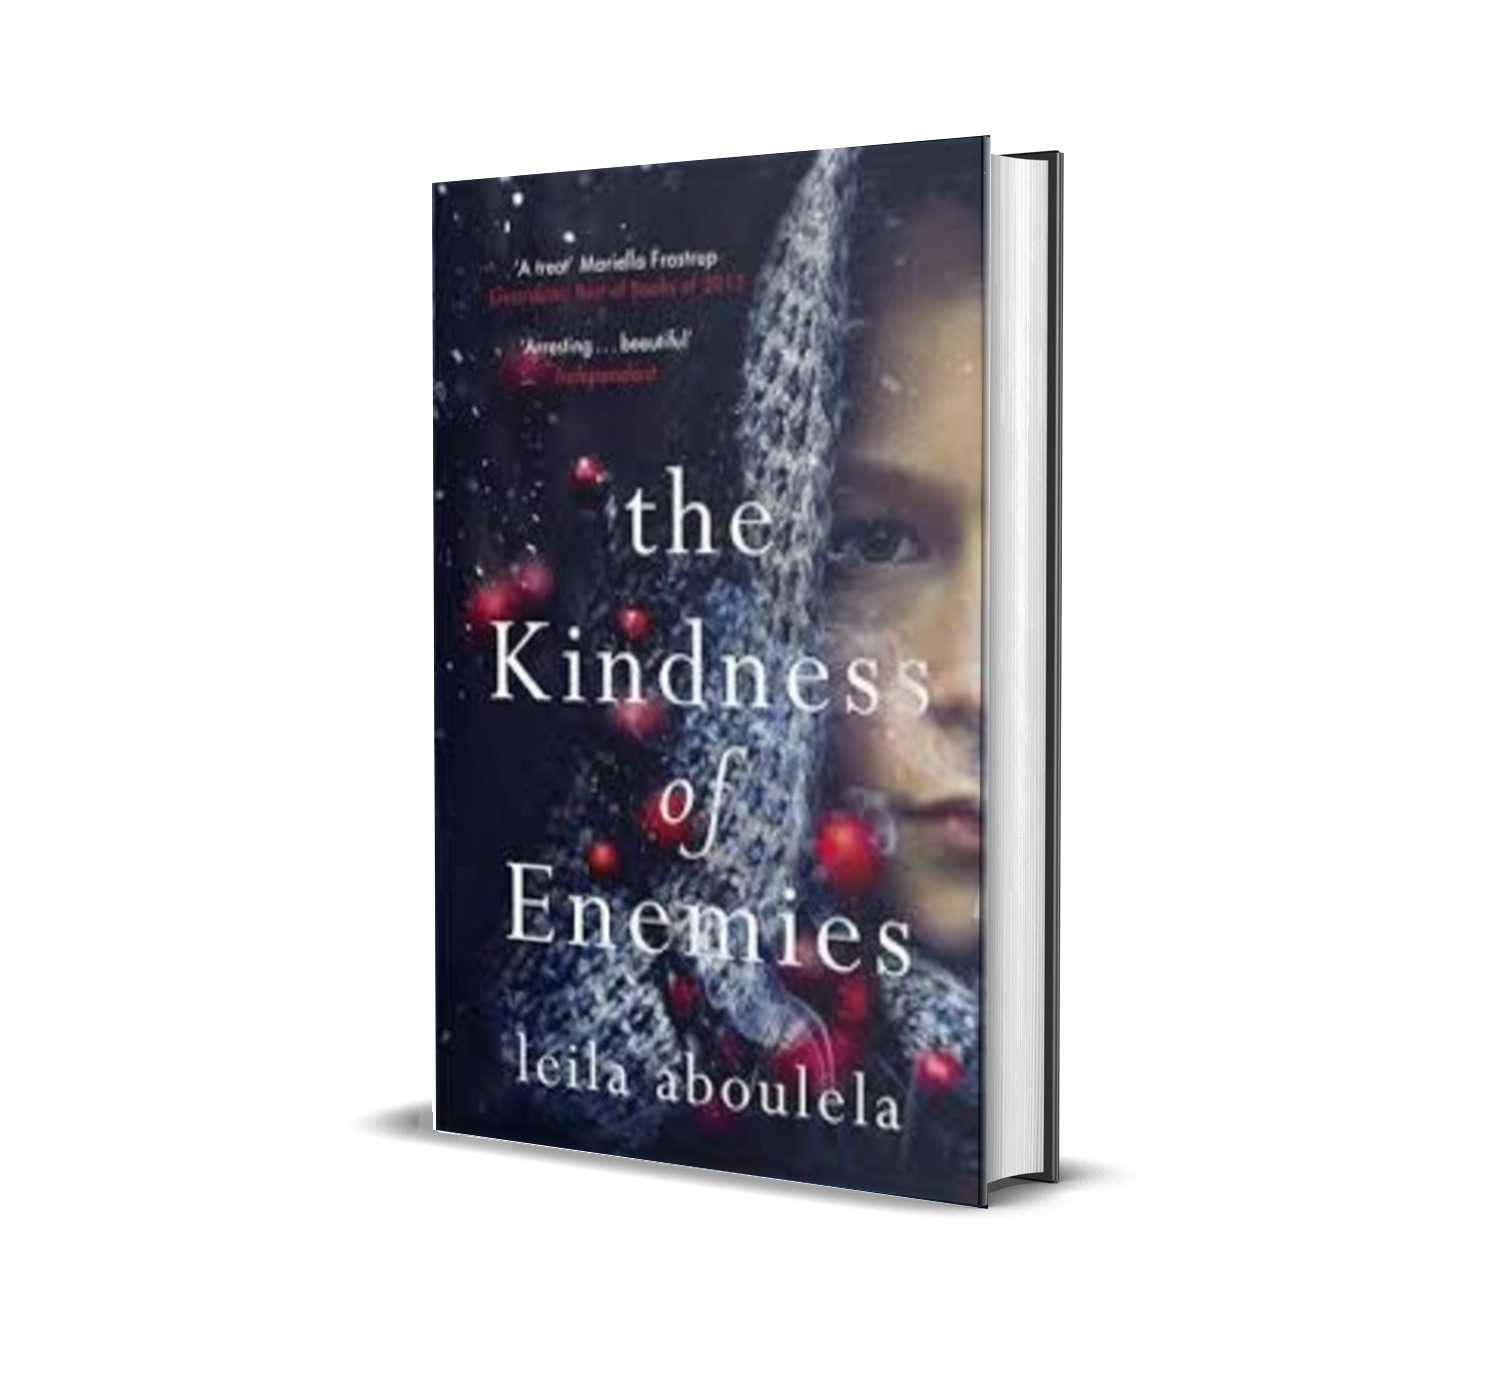 the kindness of enemie by leila aboulela